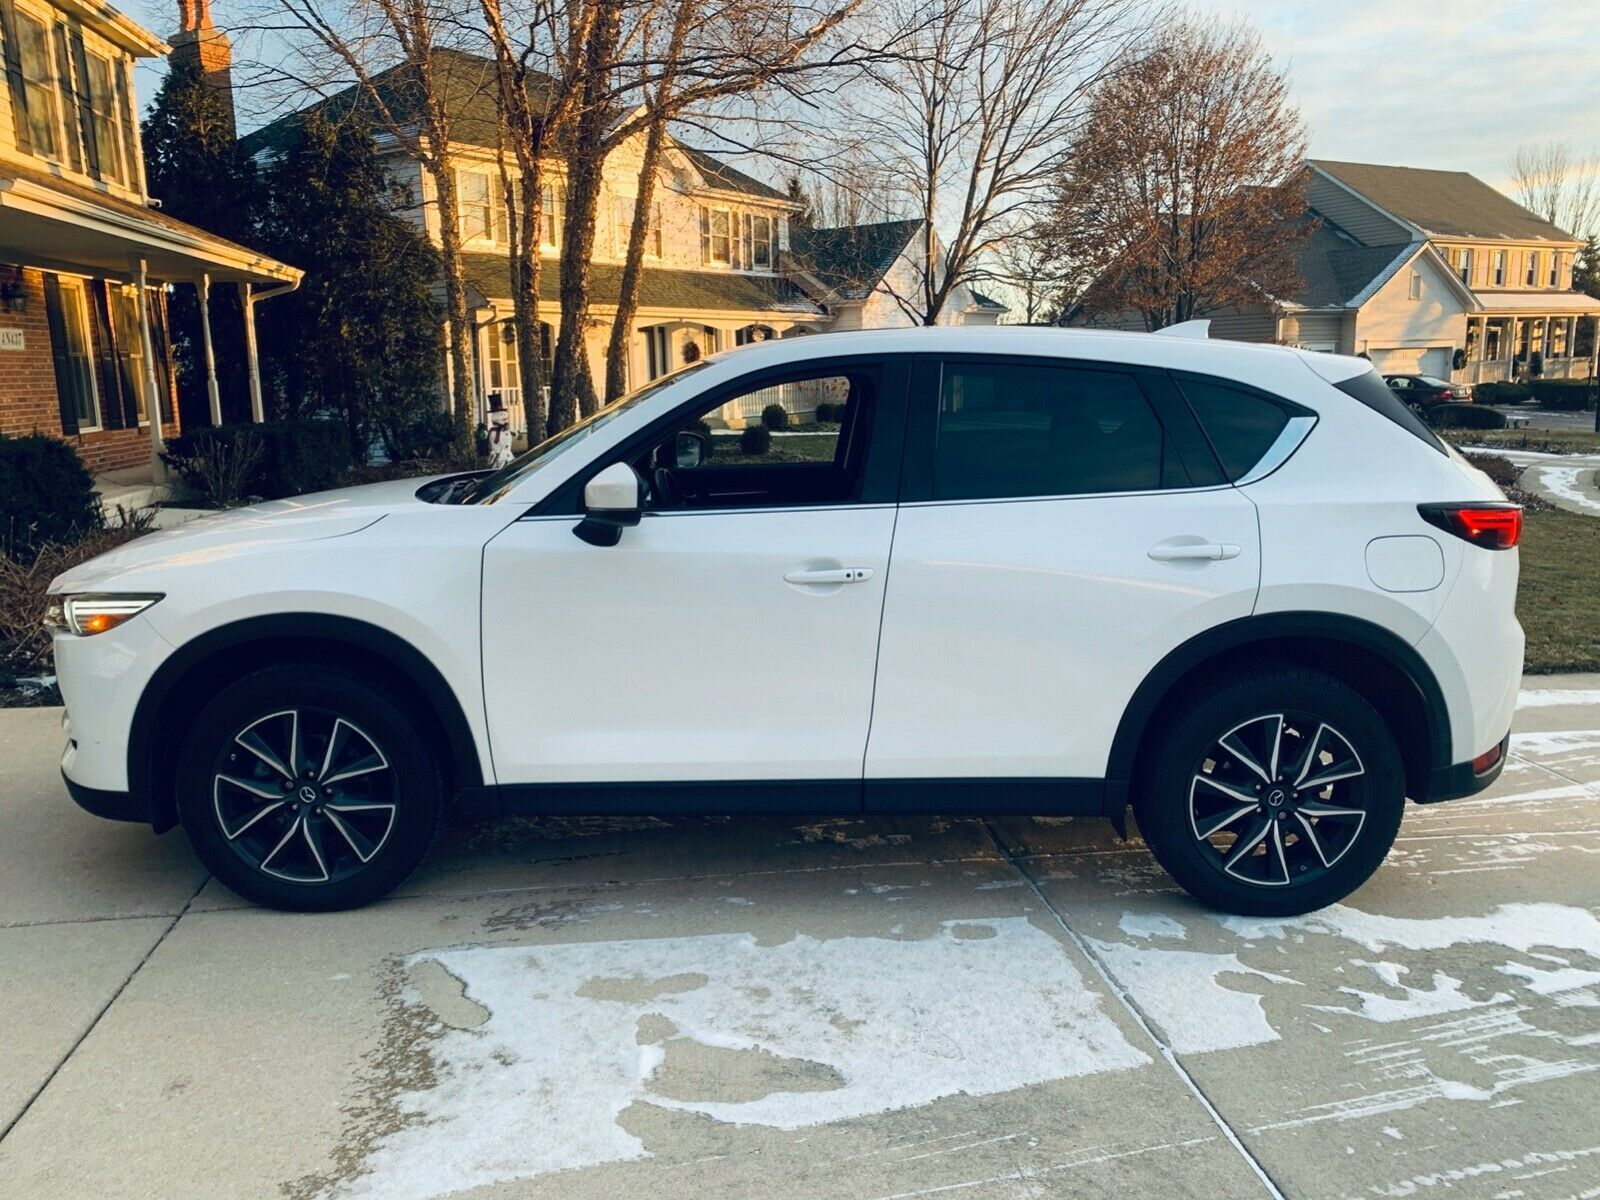 Used 2017 Mazda Cx 5 Grand Touring Awd Mazda Cx 5 Grand Touring Awd 1gt Premium Package Chrystal White Pearl Metallic 2020 Is In Stock And For Sale Mycarboar Mazda Suv Mazda Mazda Cx5